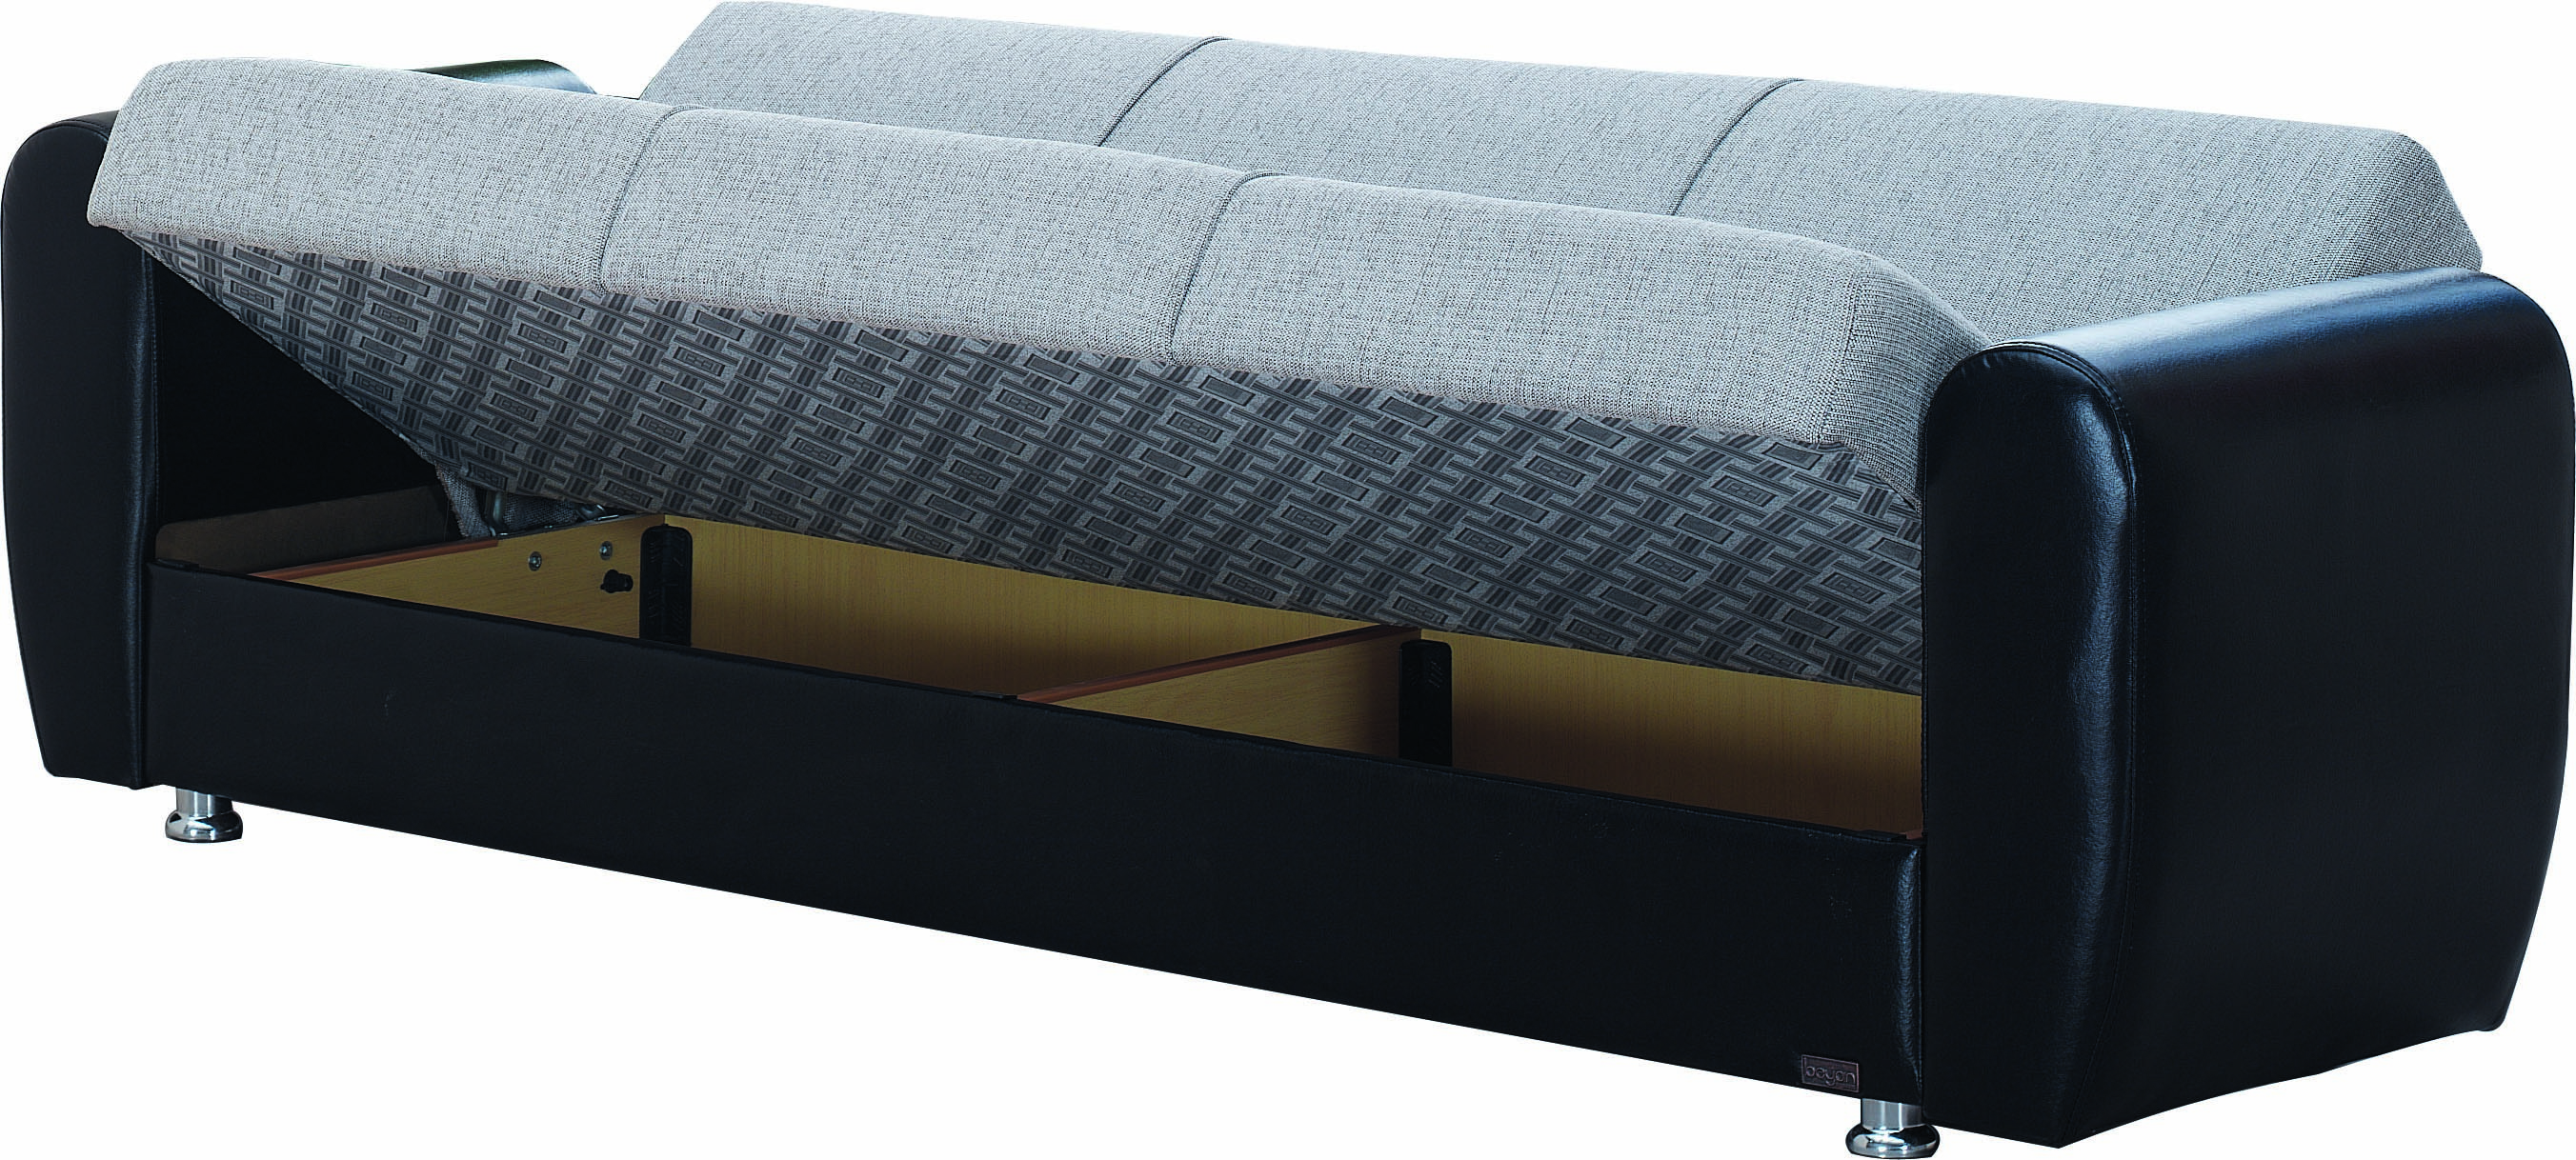 Houston sofa bed houston sofa bed by empire furniture usa for Sofa bed usa